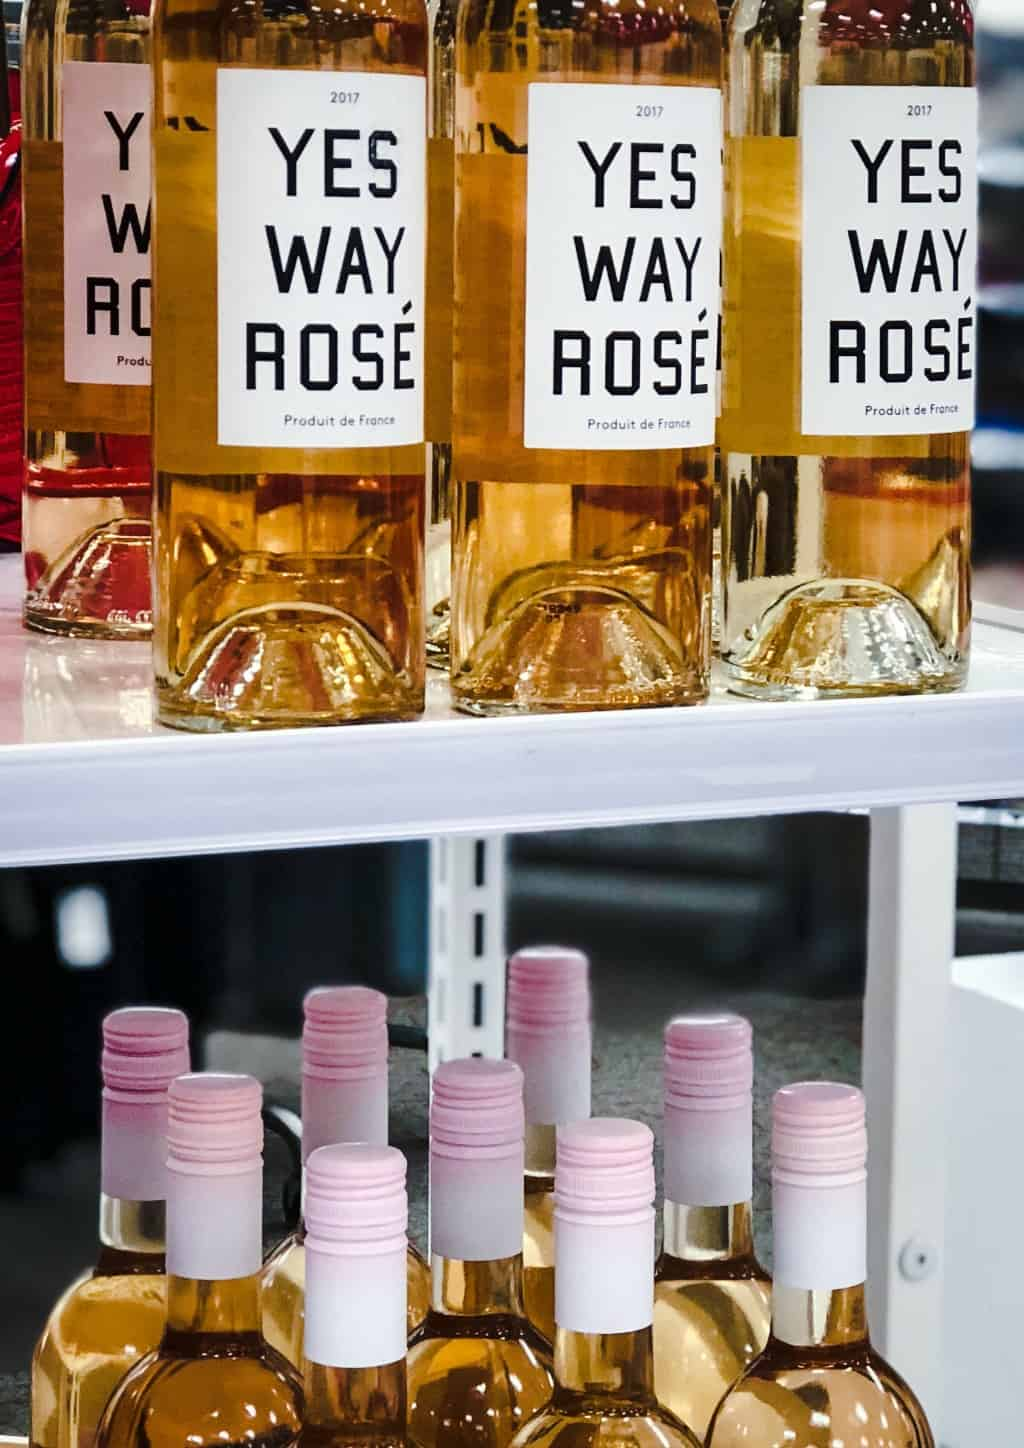 yes way rose wine at target